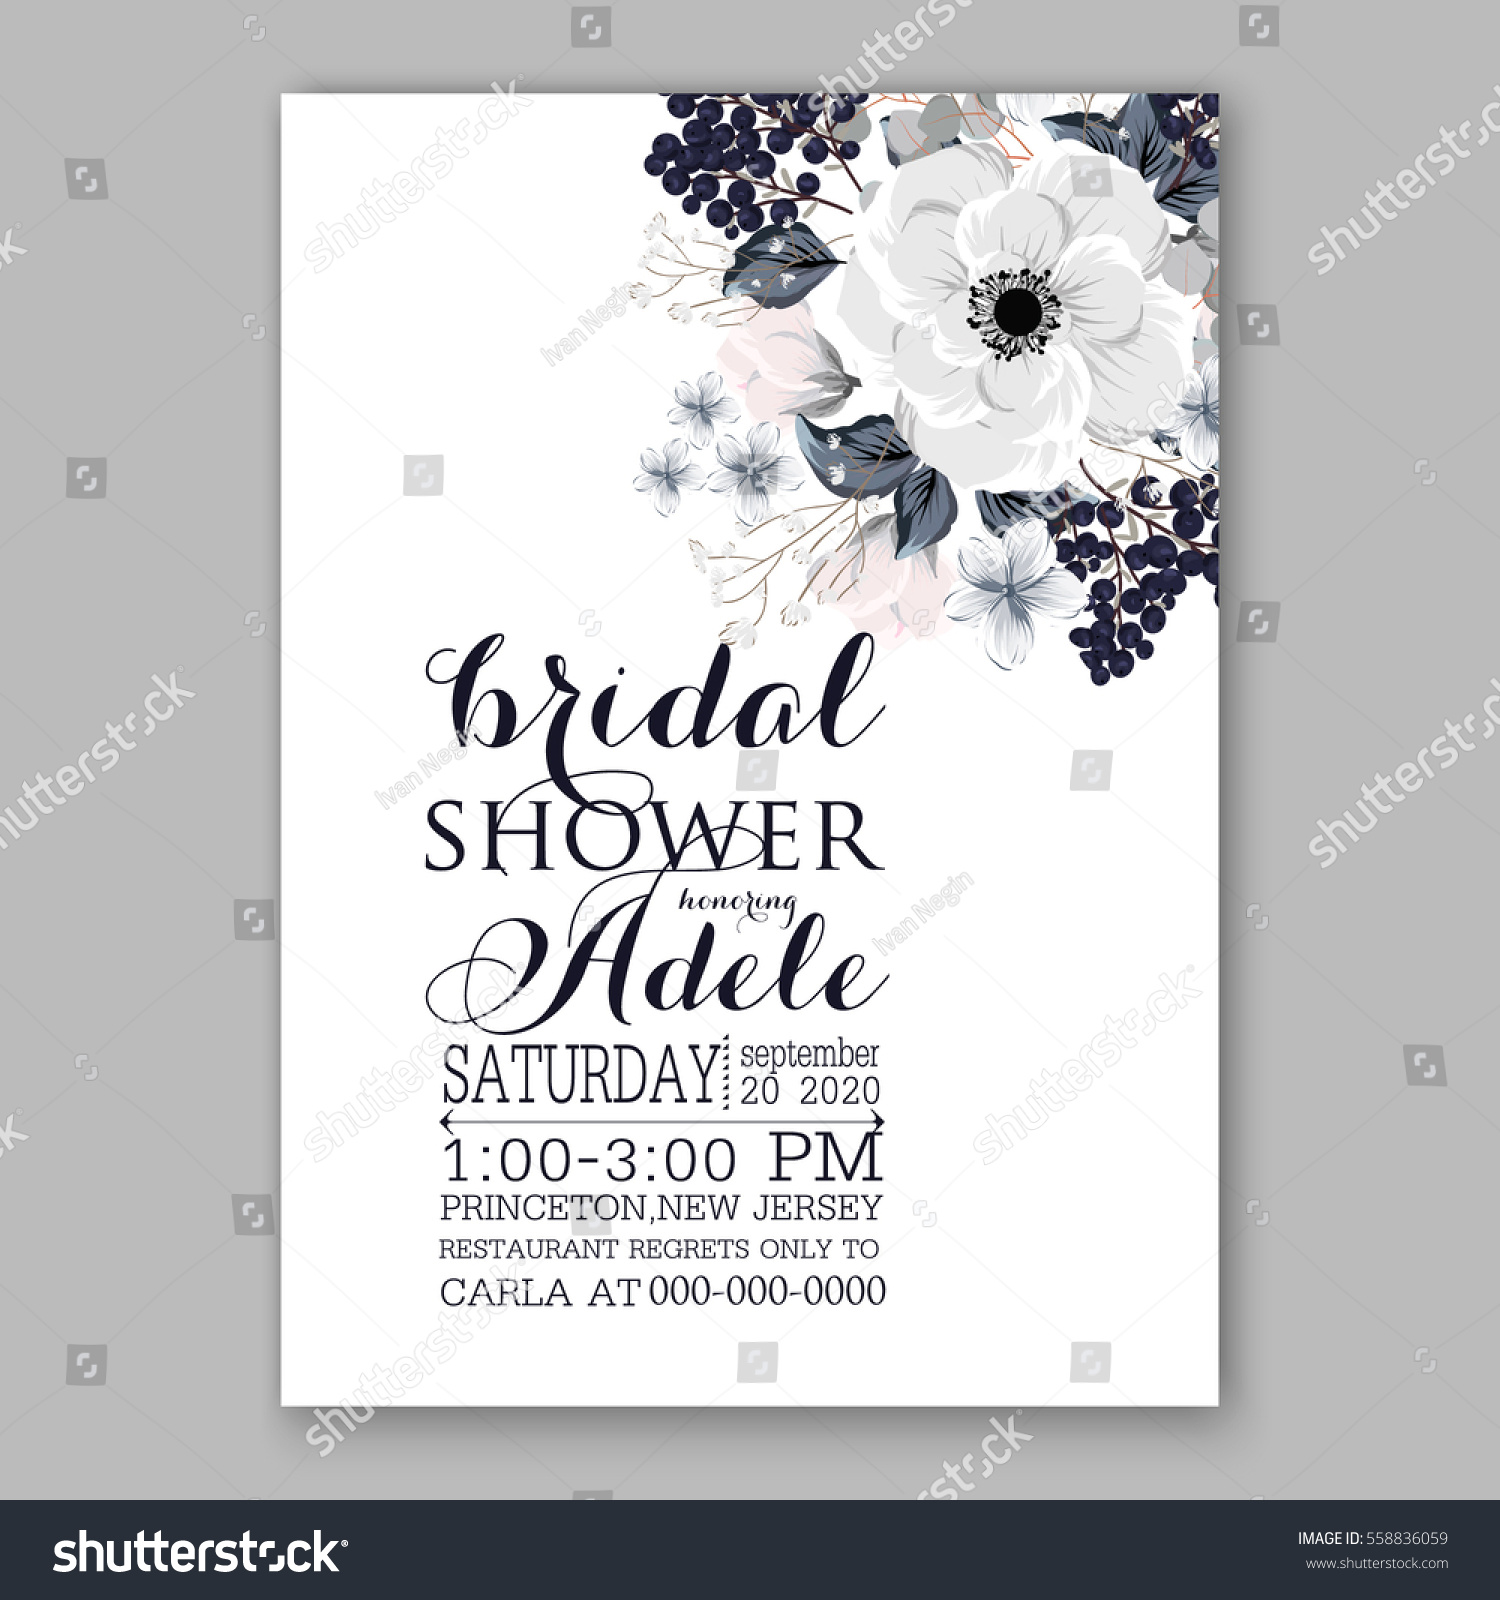 Wedding Invitations With Anemone Flowers Bridal Shower Invitation Cards In Light Gray And Blue